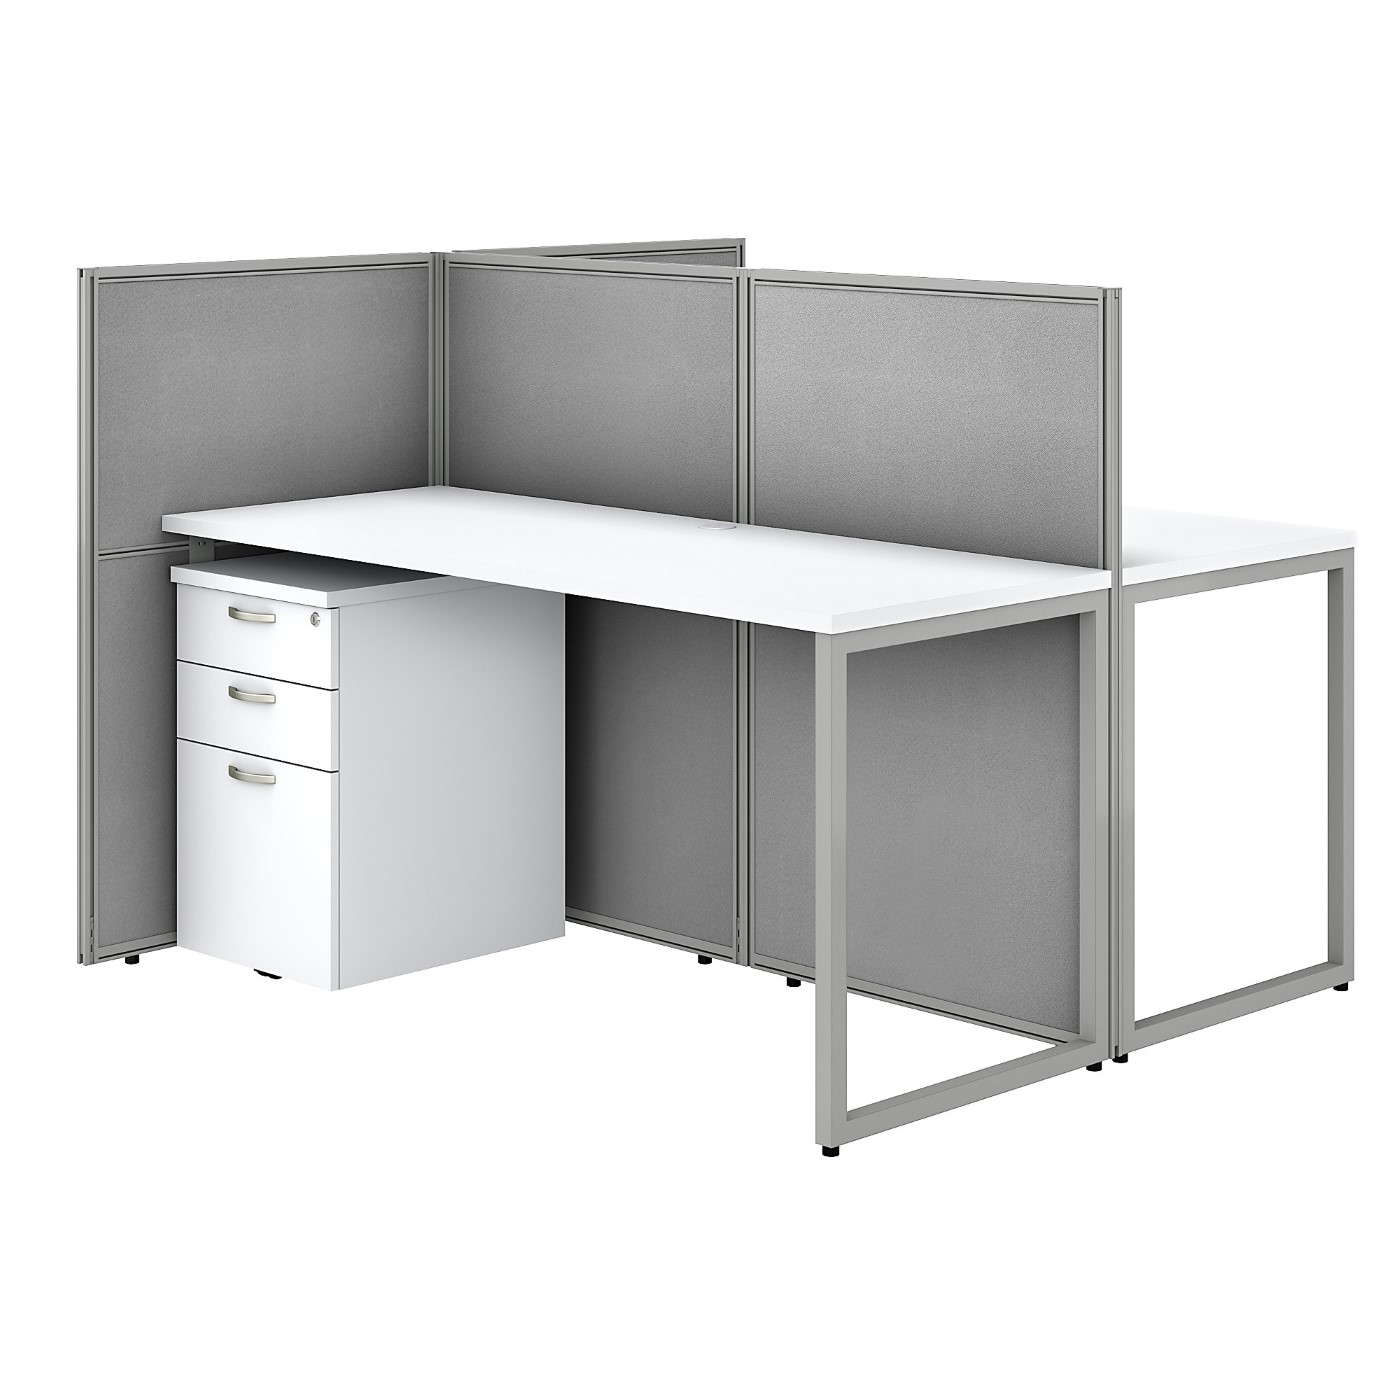 BUSH BUSINESS FURNITURE EASY OFFICE 60W 2 PERSON CUBICLE DESK WITH FILE CABINETS AND 45H PANELS. FREE SHIPPING SALE DEDUCT 10% MORE ENTER '10percent' IN COUPON CODE BOX WHILE CHECKING OUT. ENDS 5-31-20.